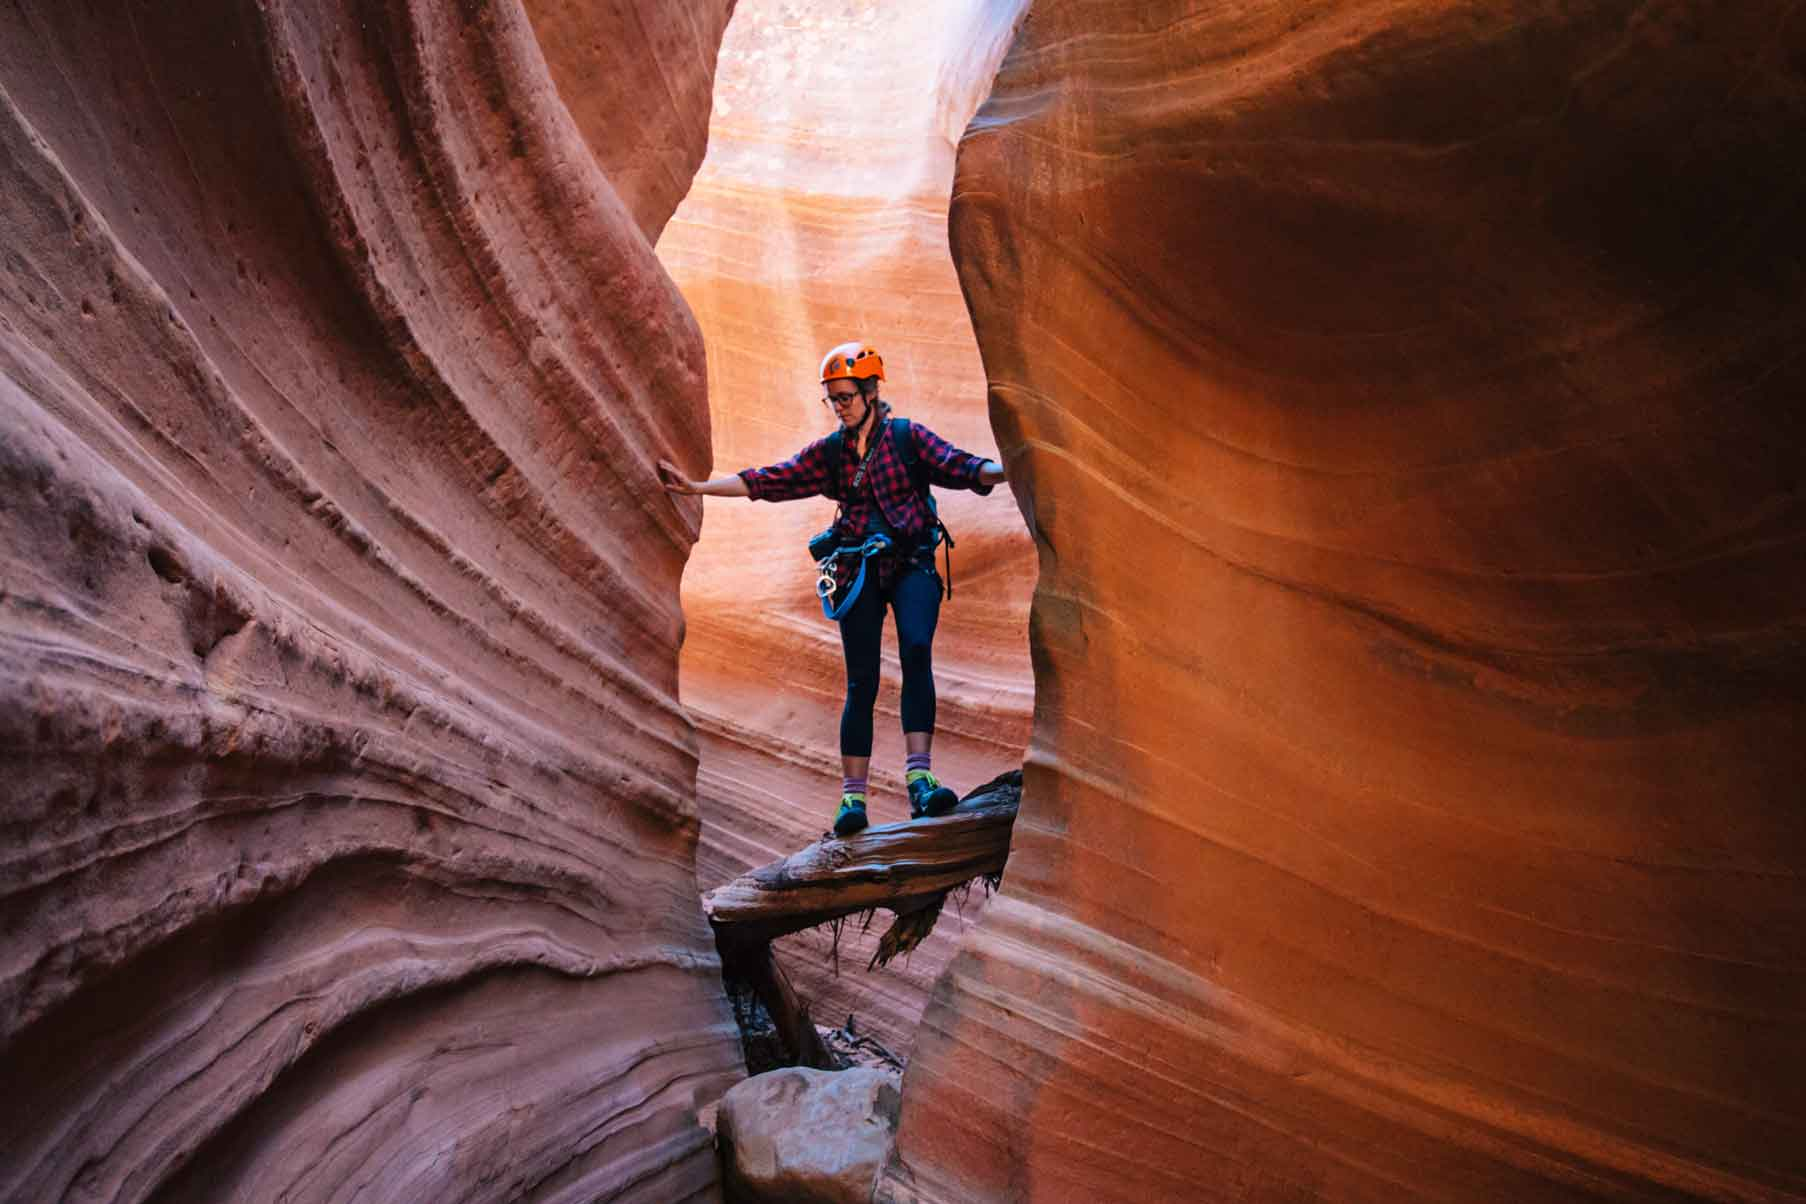 Megan standing on a rock in a slot canyon